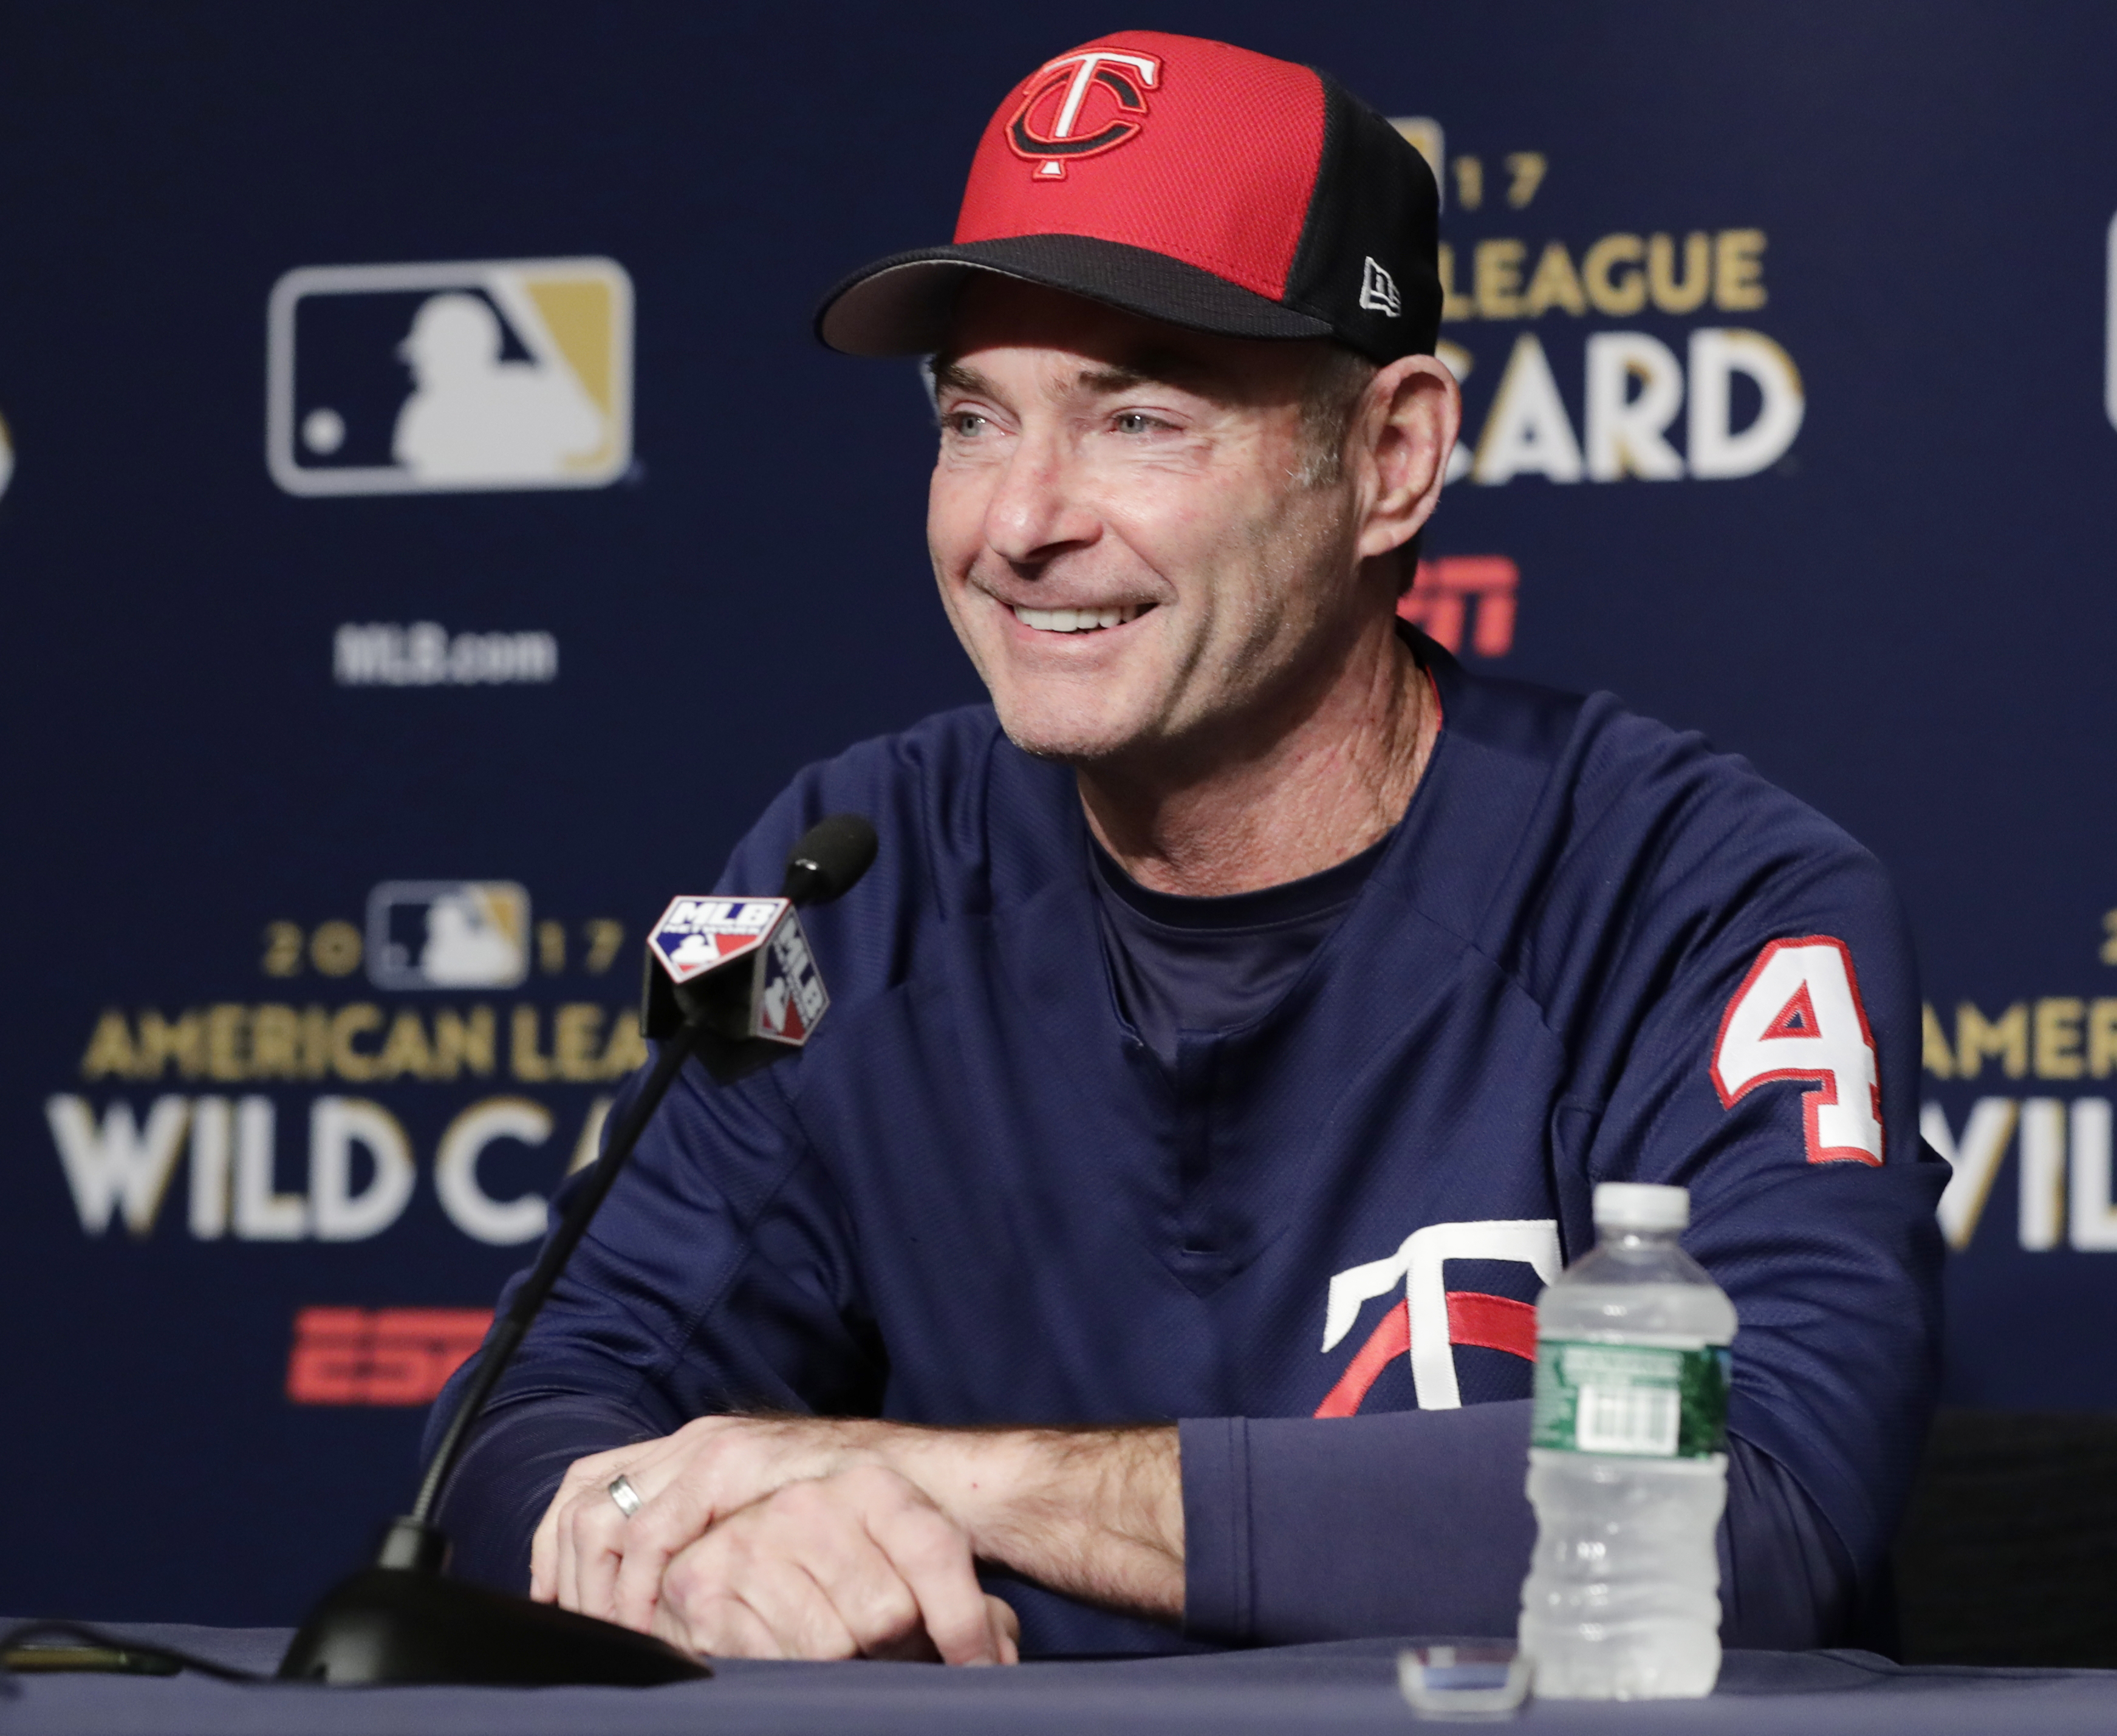 Paul Molitor gets three-year extension after Twins' surprising playoff run